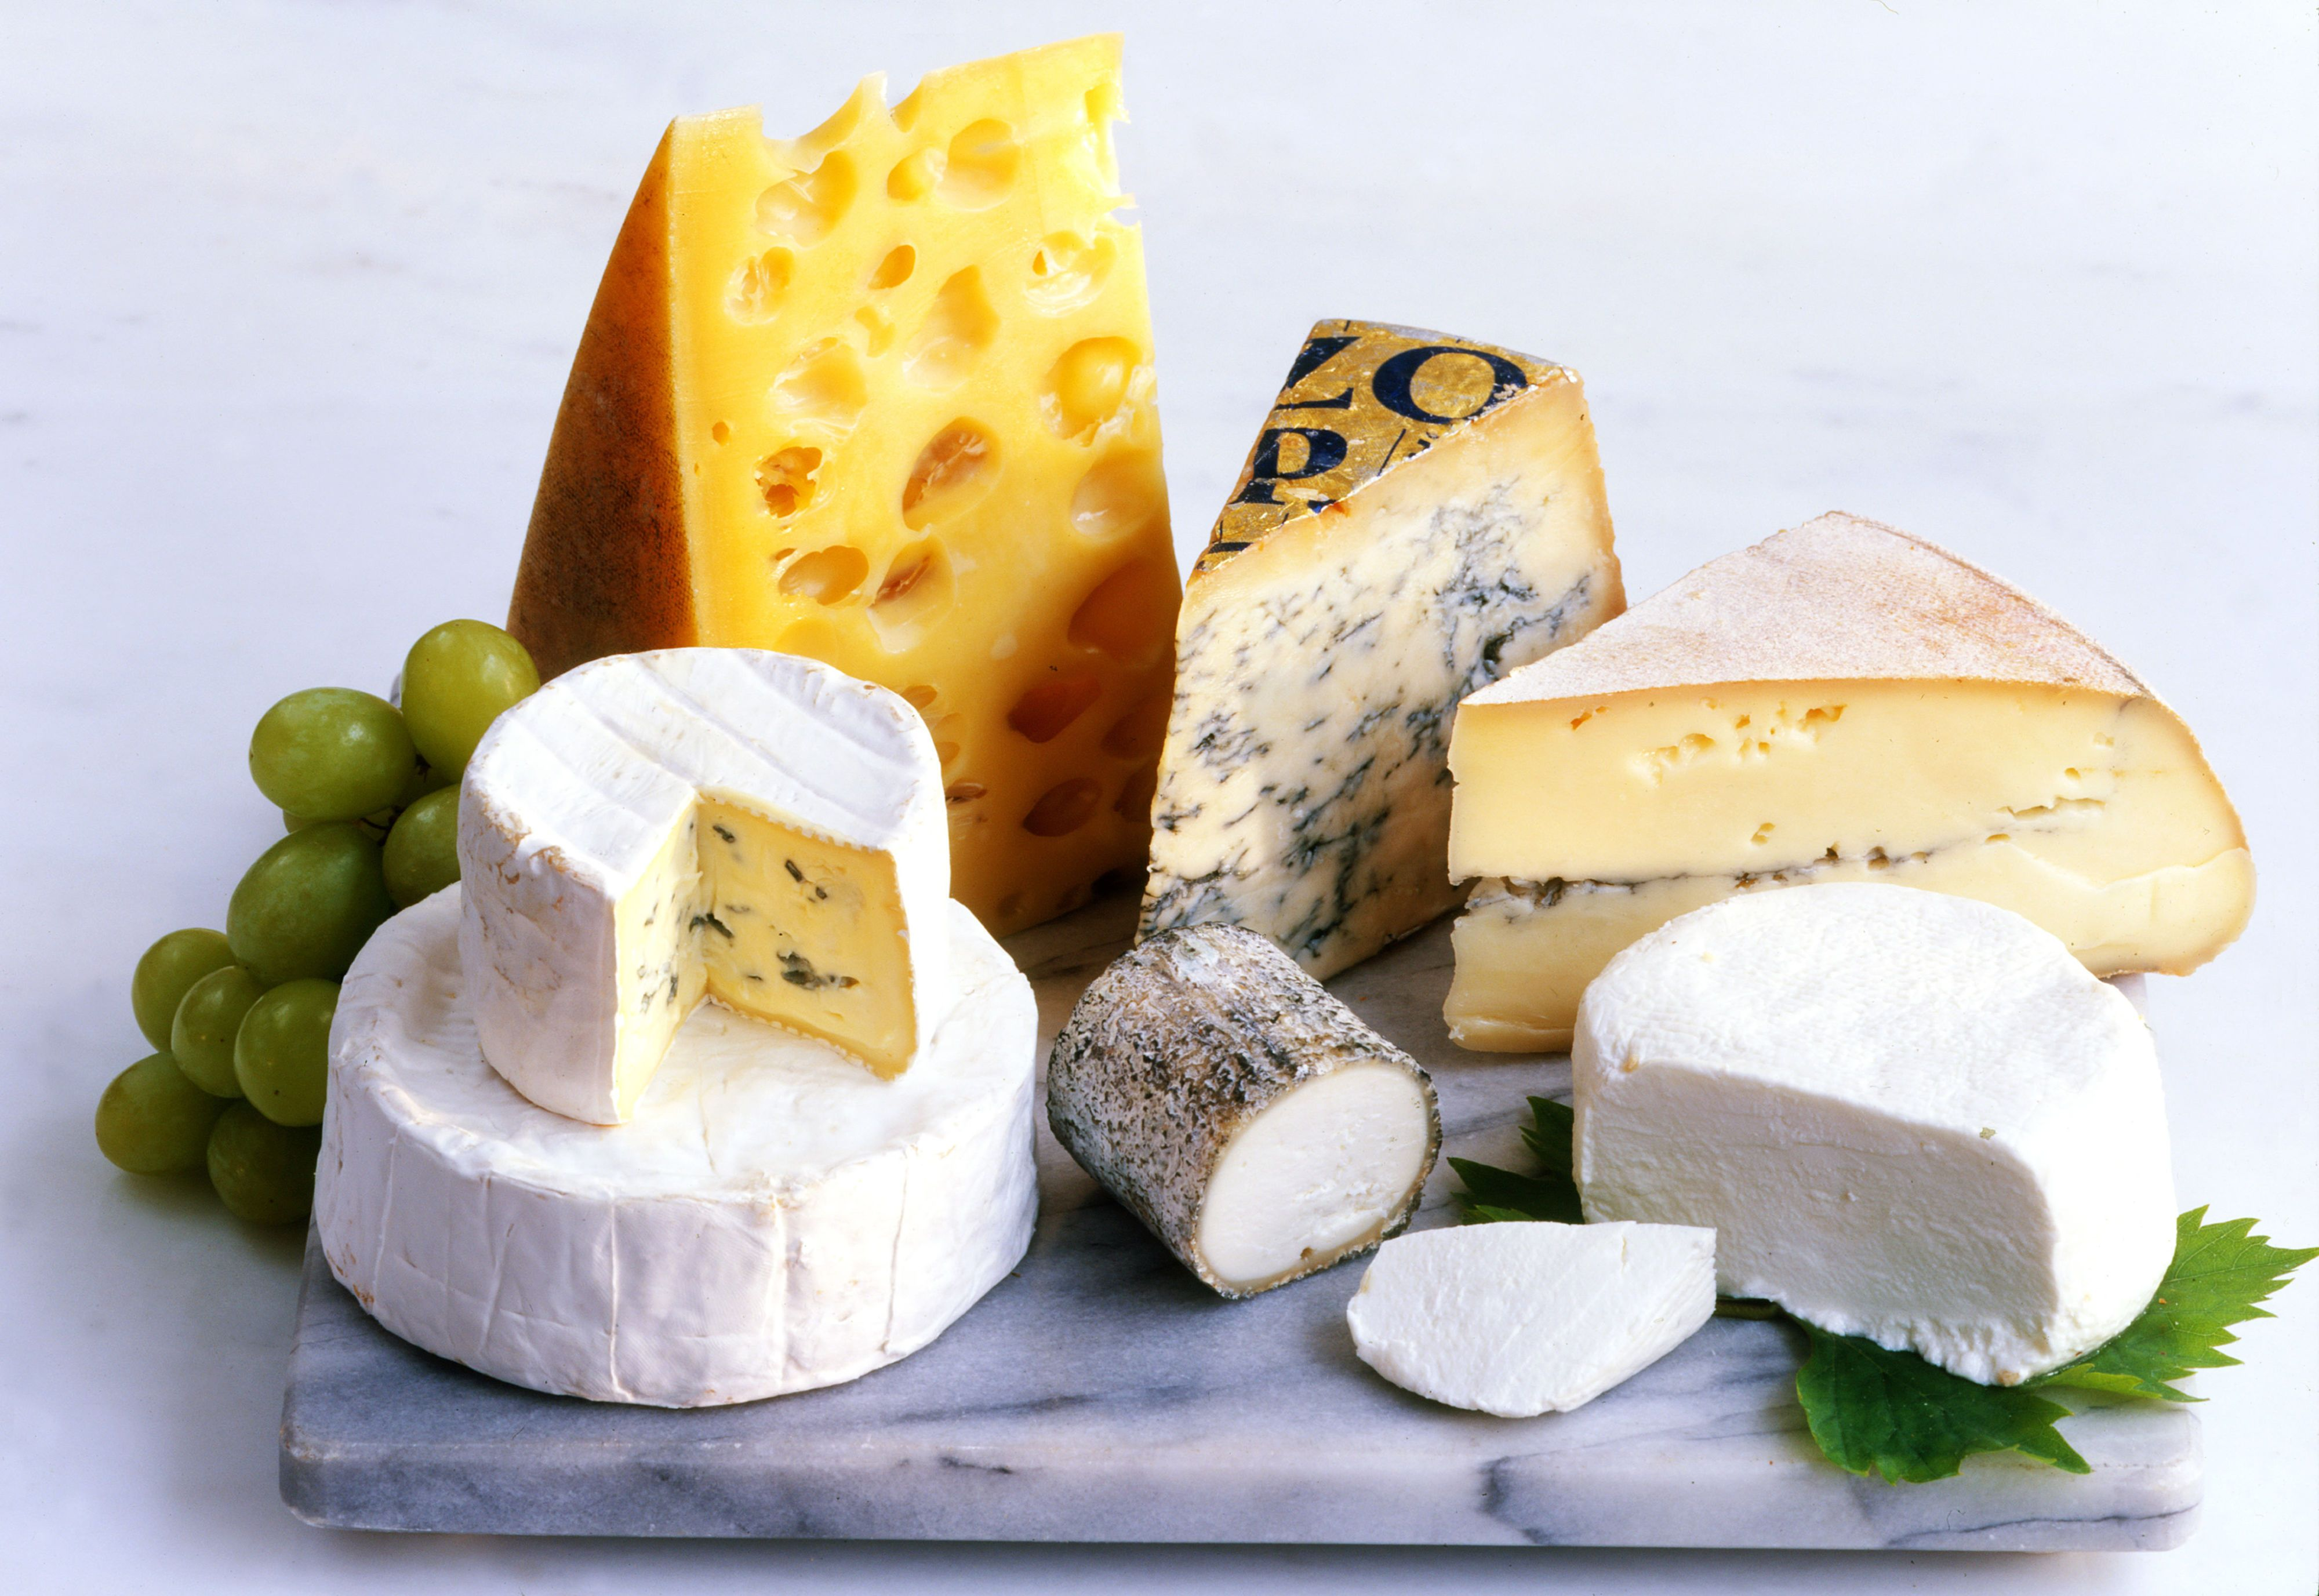 A New Study Says Cheese Can Help Kill Cancer Cells